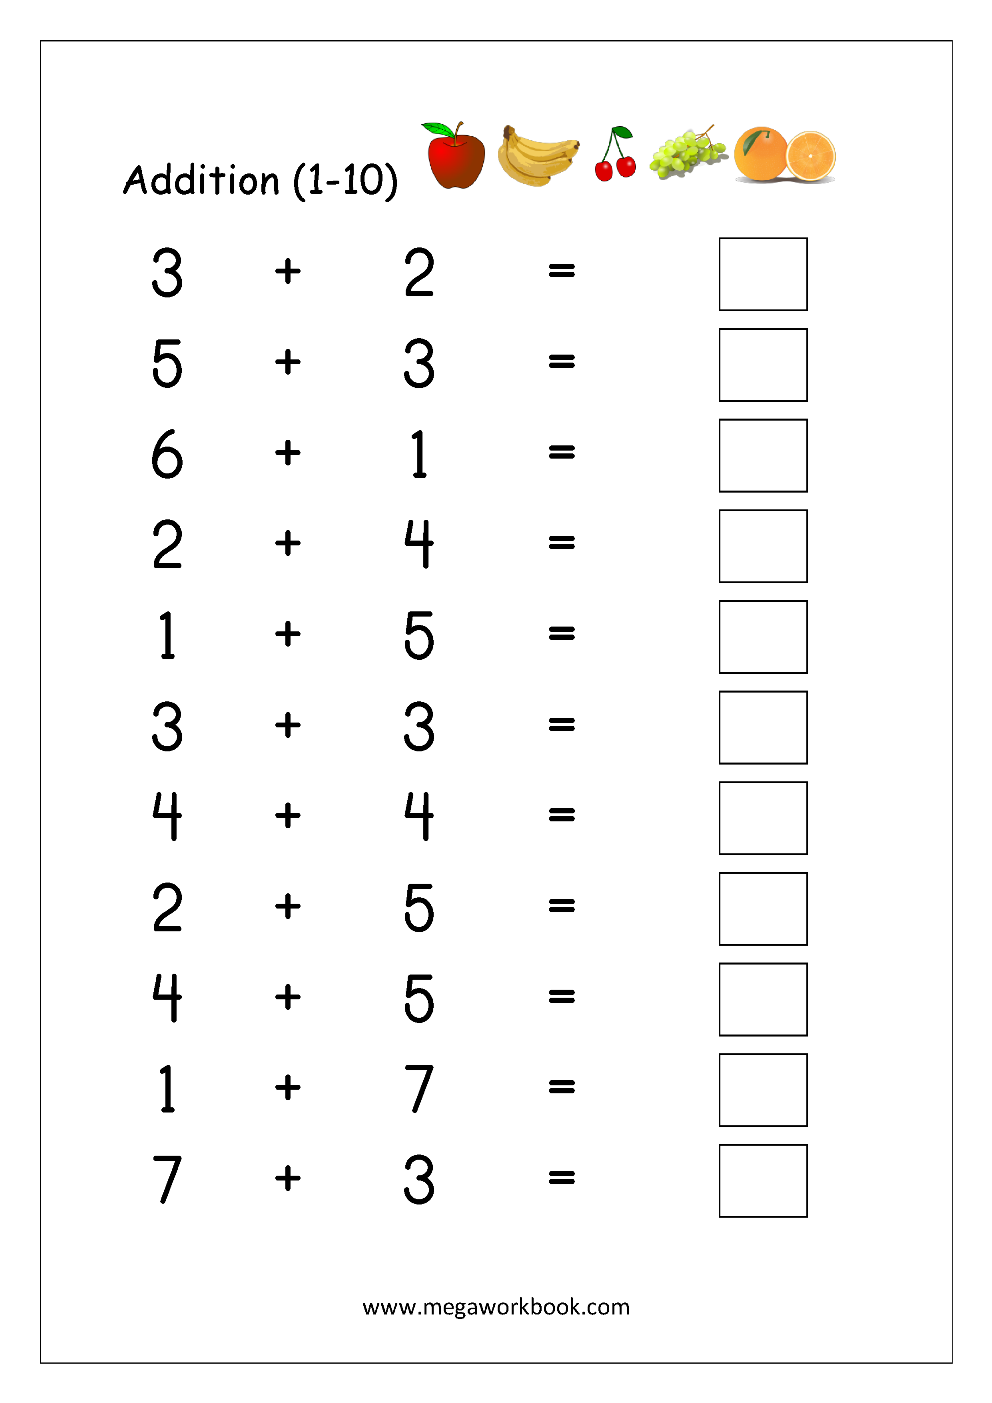 Free Math Worksheets Number Addition MegaWorkbook – Addition to 10 Worksheet